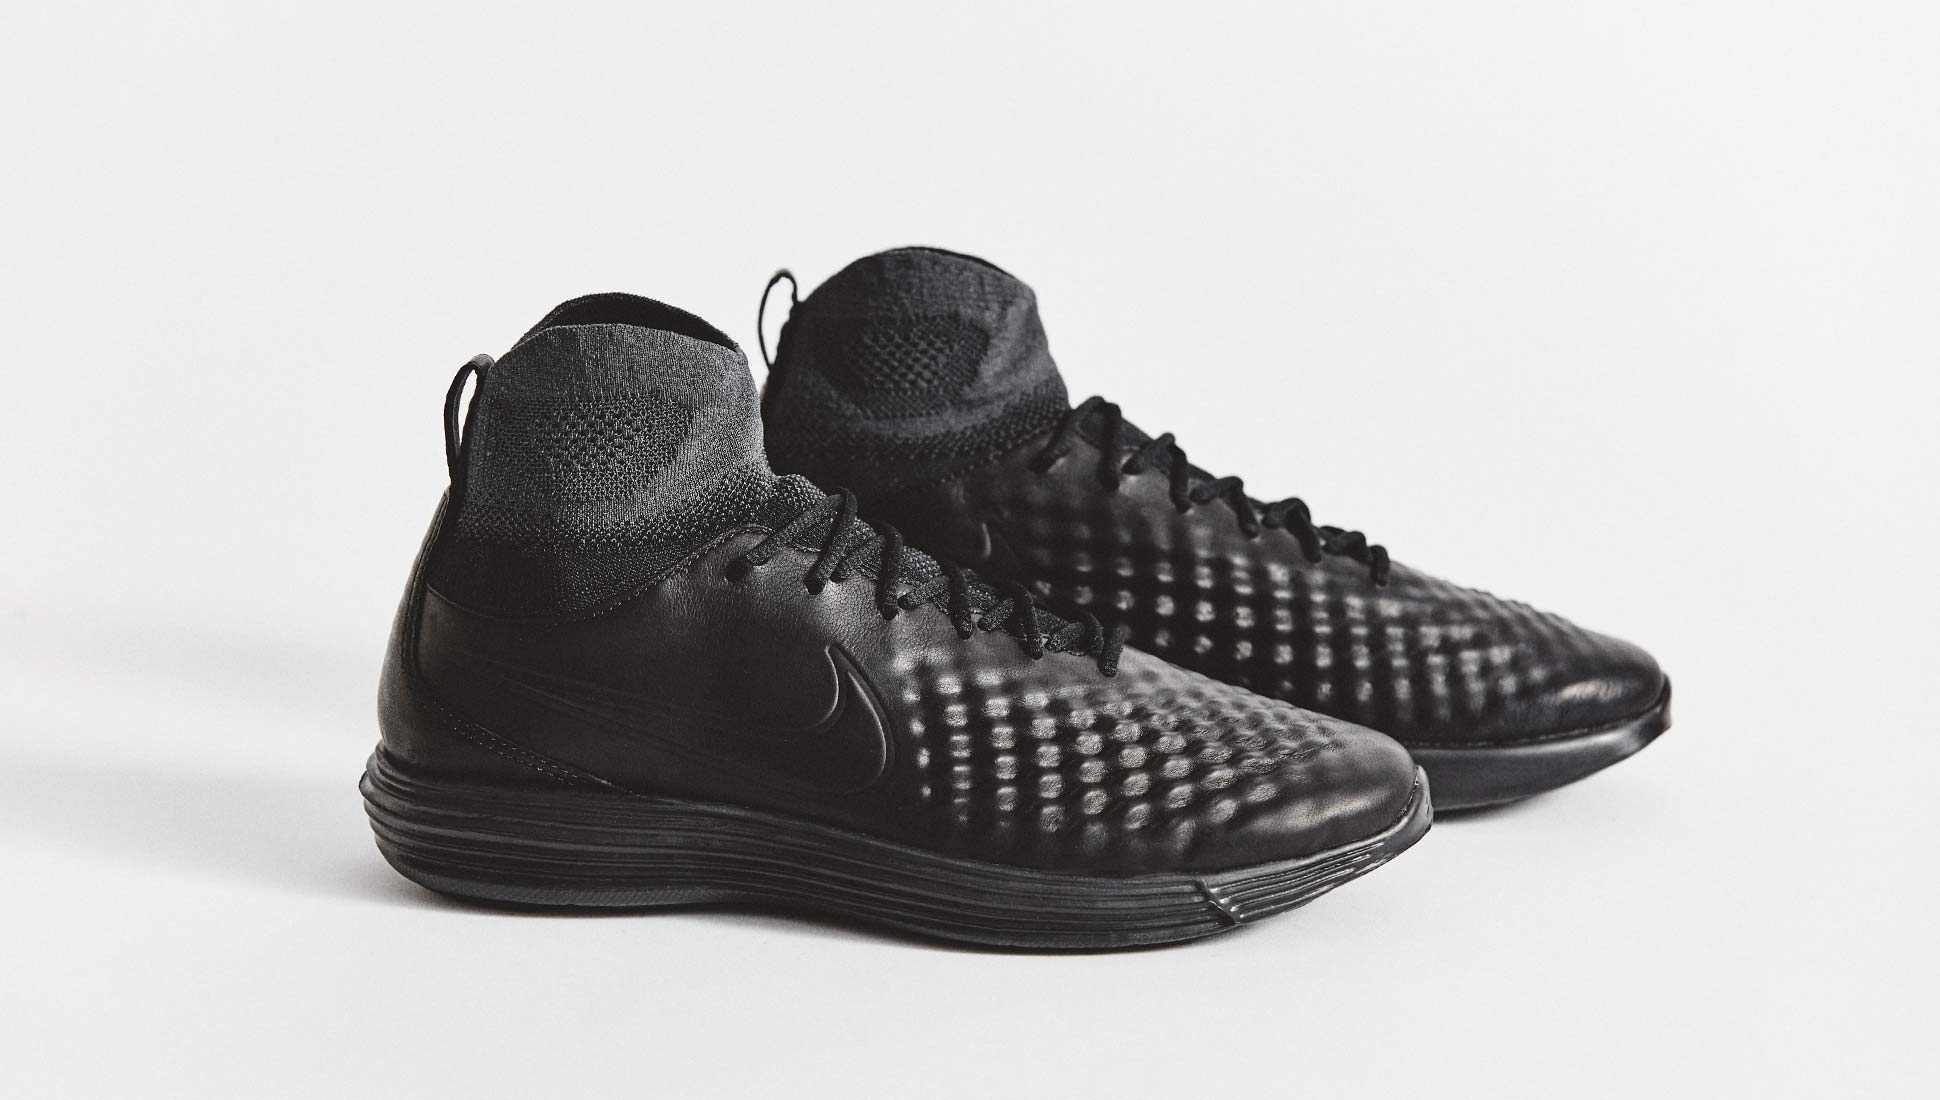 promo code 0d2ec 6a65c coupon code nike lance la lunar magista ii flyknit footpack fe408 894be